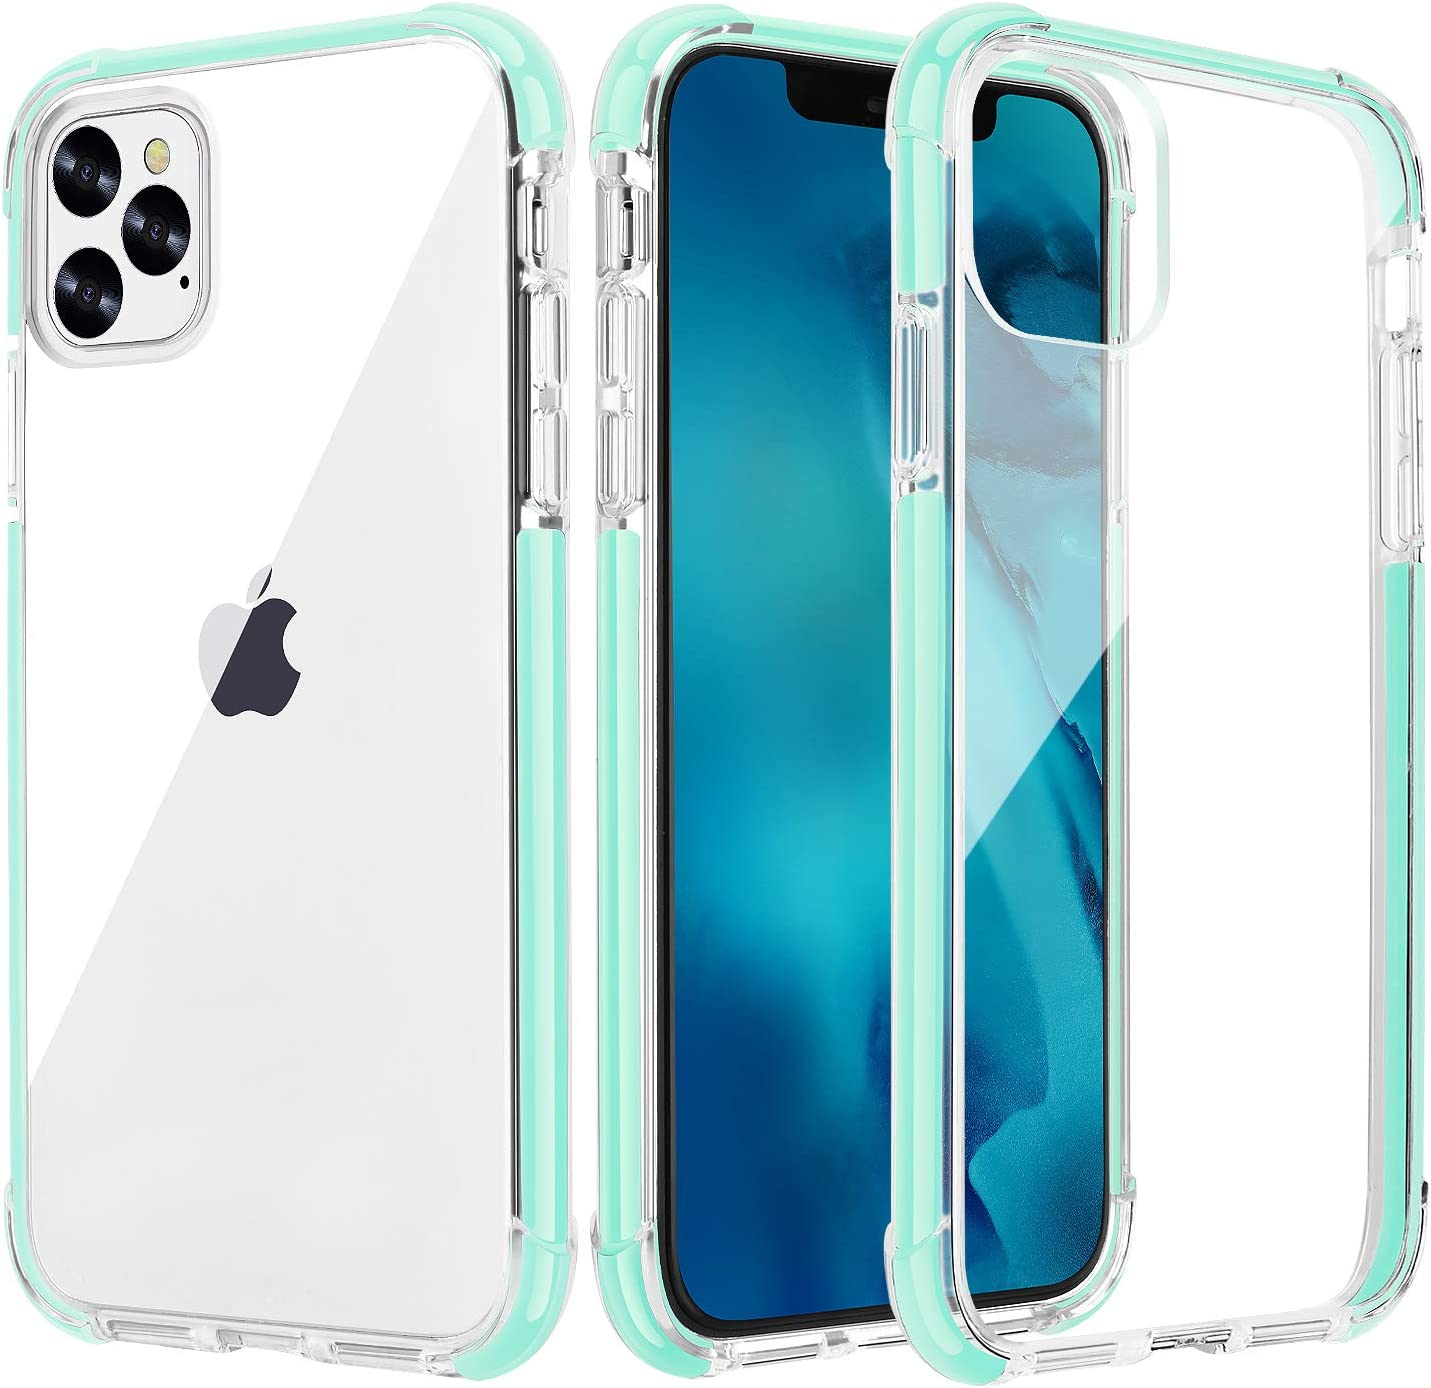 OHNICE iPhone 11 Pro Max Case Clear Premium Anti-Yellow Hard PC Back Cover with Soft Crystal Corners Rubber Bumper Shockproof Protective Case for Apple New iPhone 11 Pro Max 6.5 inch (Green)